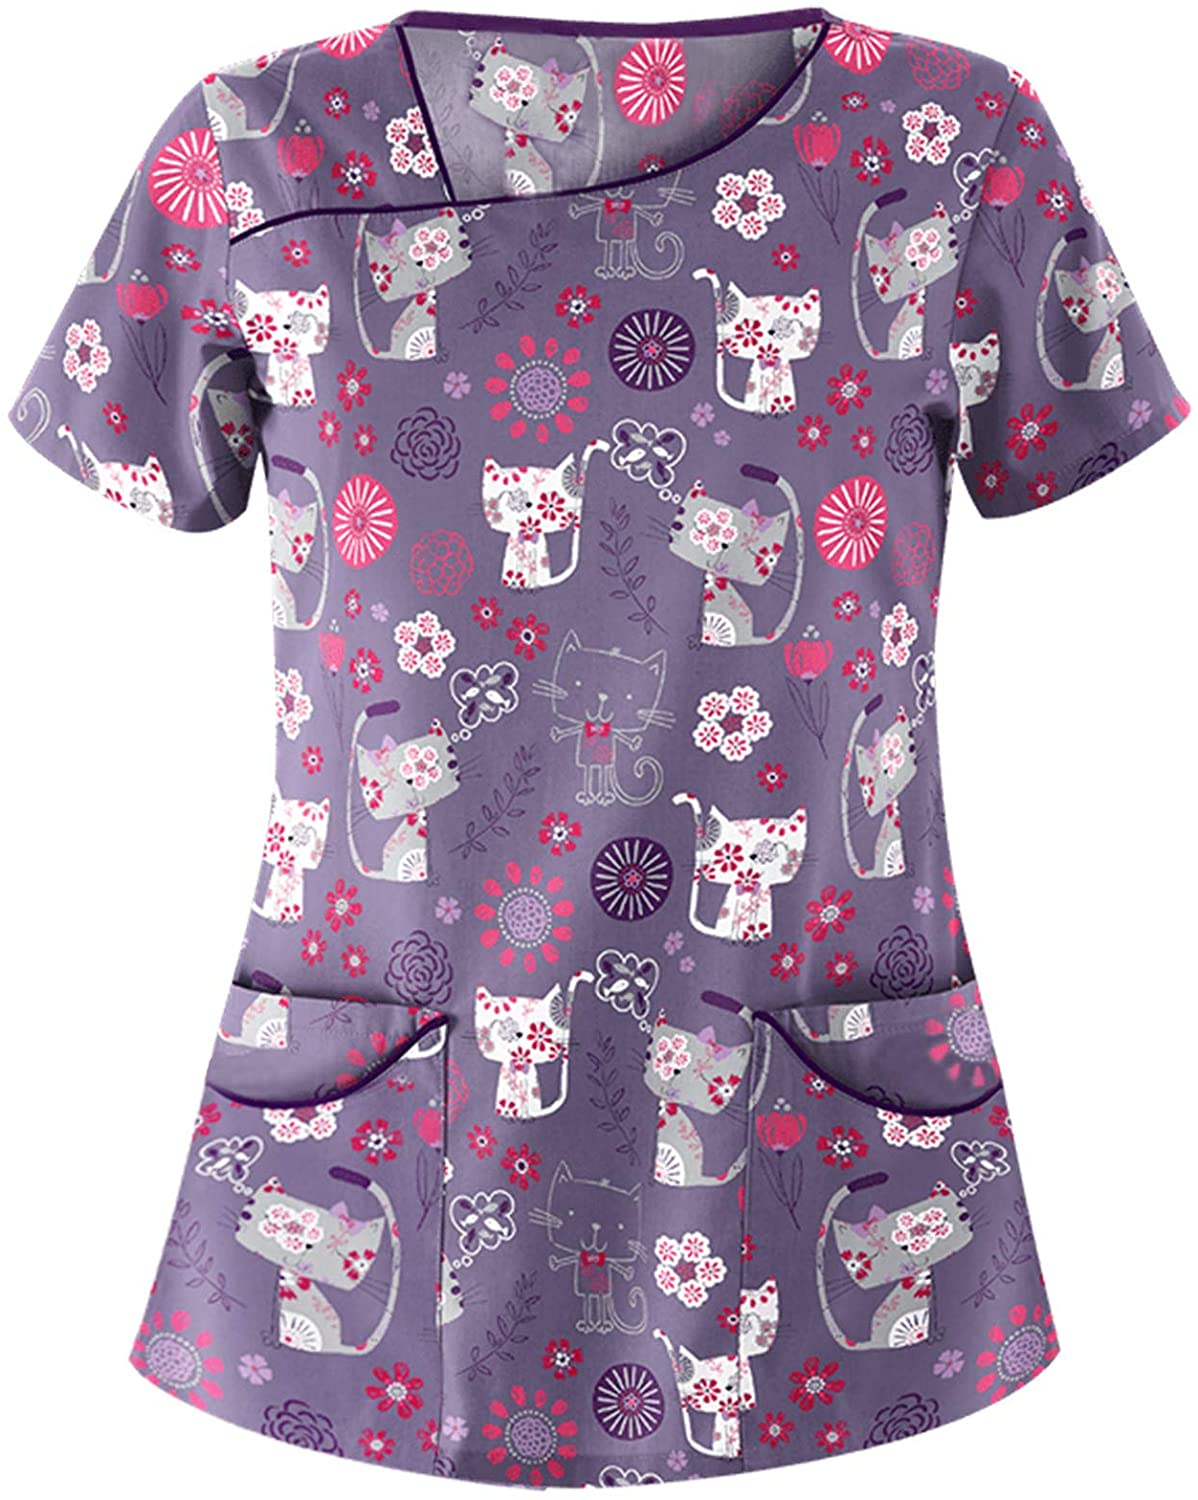 Funny Printed Scrub Industry No. 1 Tops Women Today's only Men T Neck Stretchy Holiday V Shi